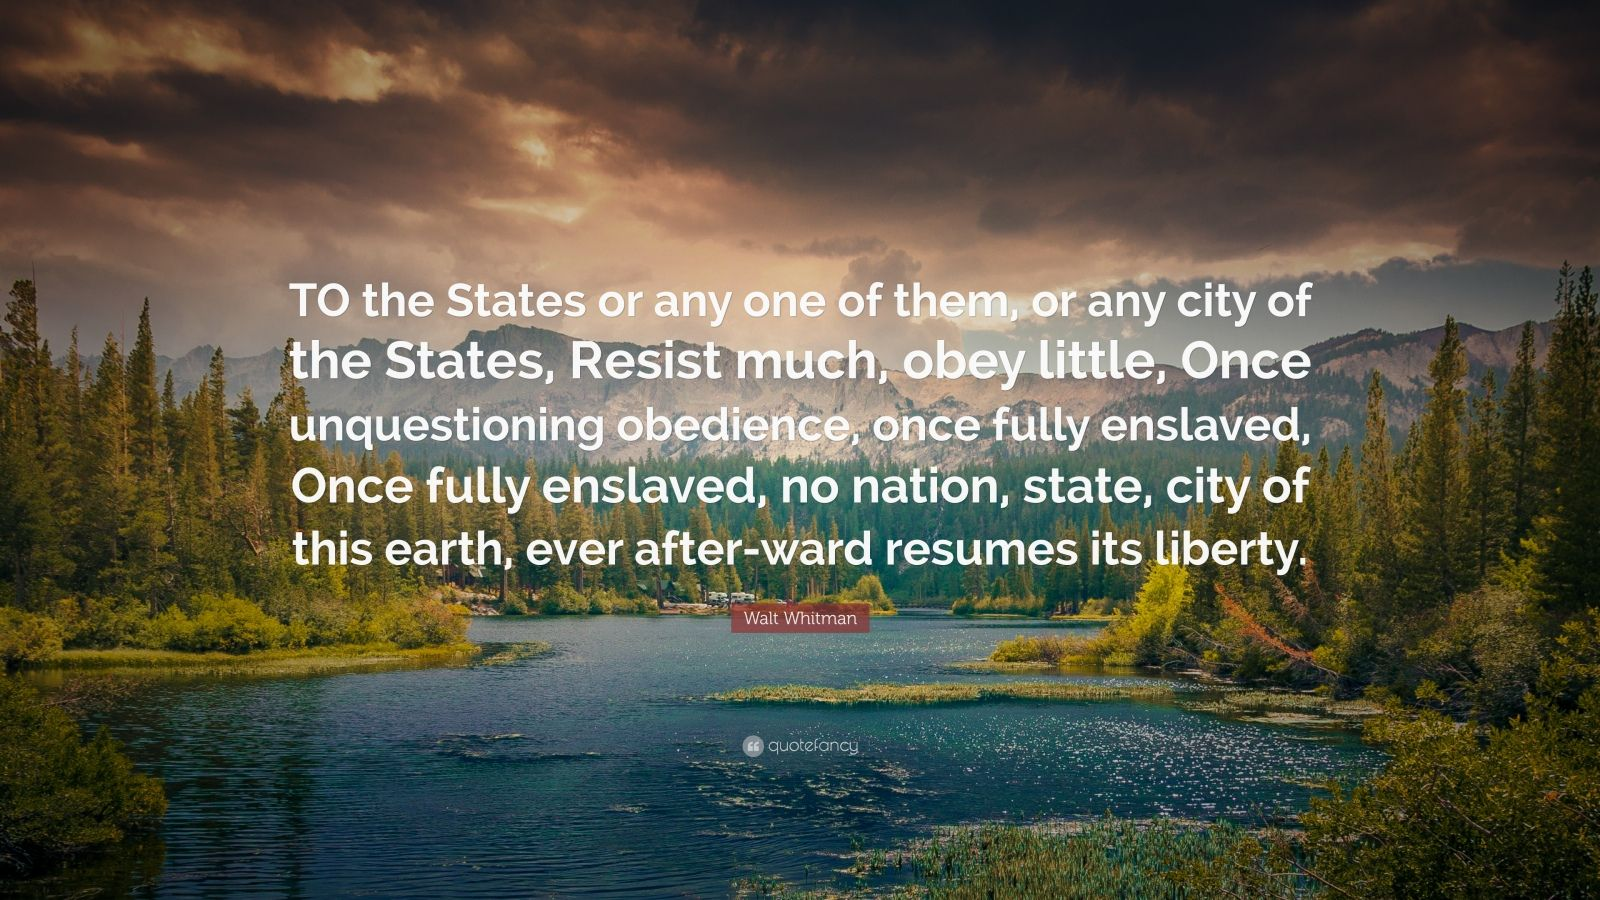 """Walt Whitman Quote: """"TO the States or any one of them, or any city of the States, Resist much, obey little, Once unquestioning obedience, once fully enslaved, Once fully enslaved, no nation, state, city of this earth, ever after-ward resumes its liberty."""""""